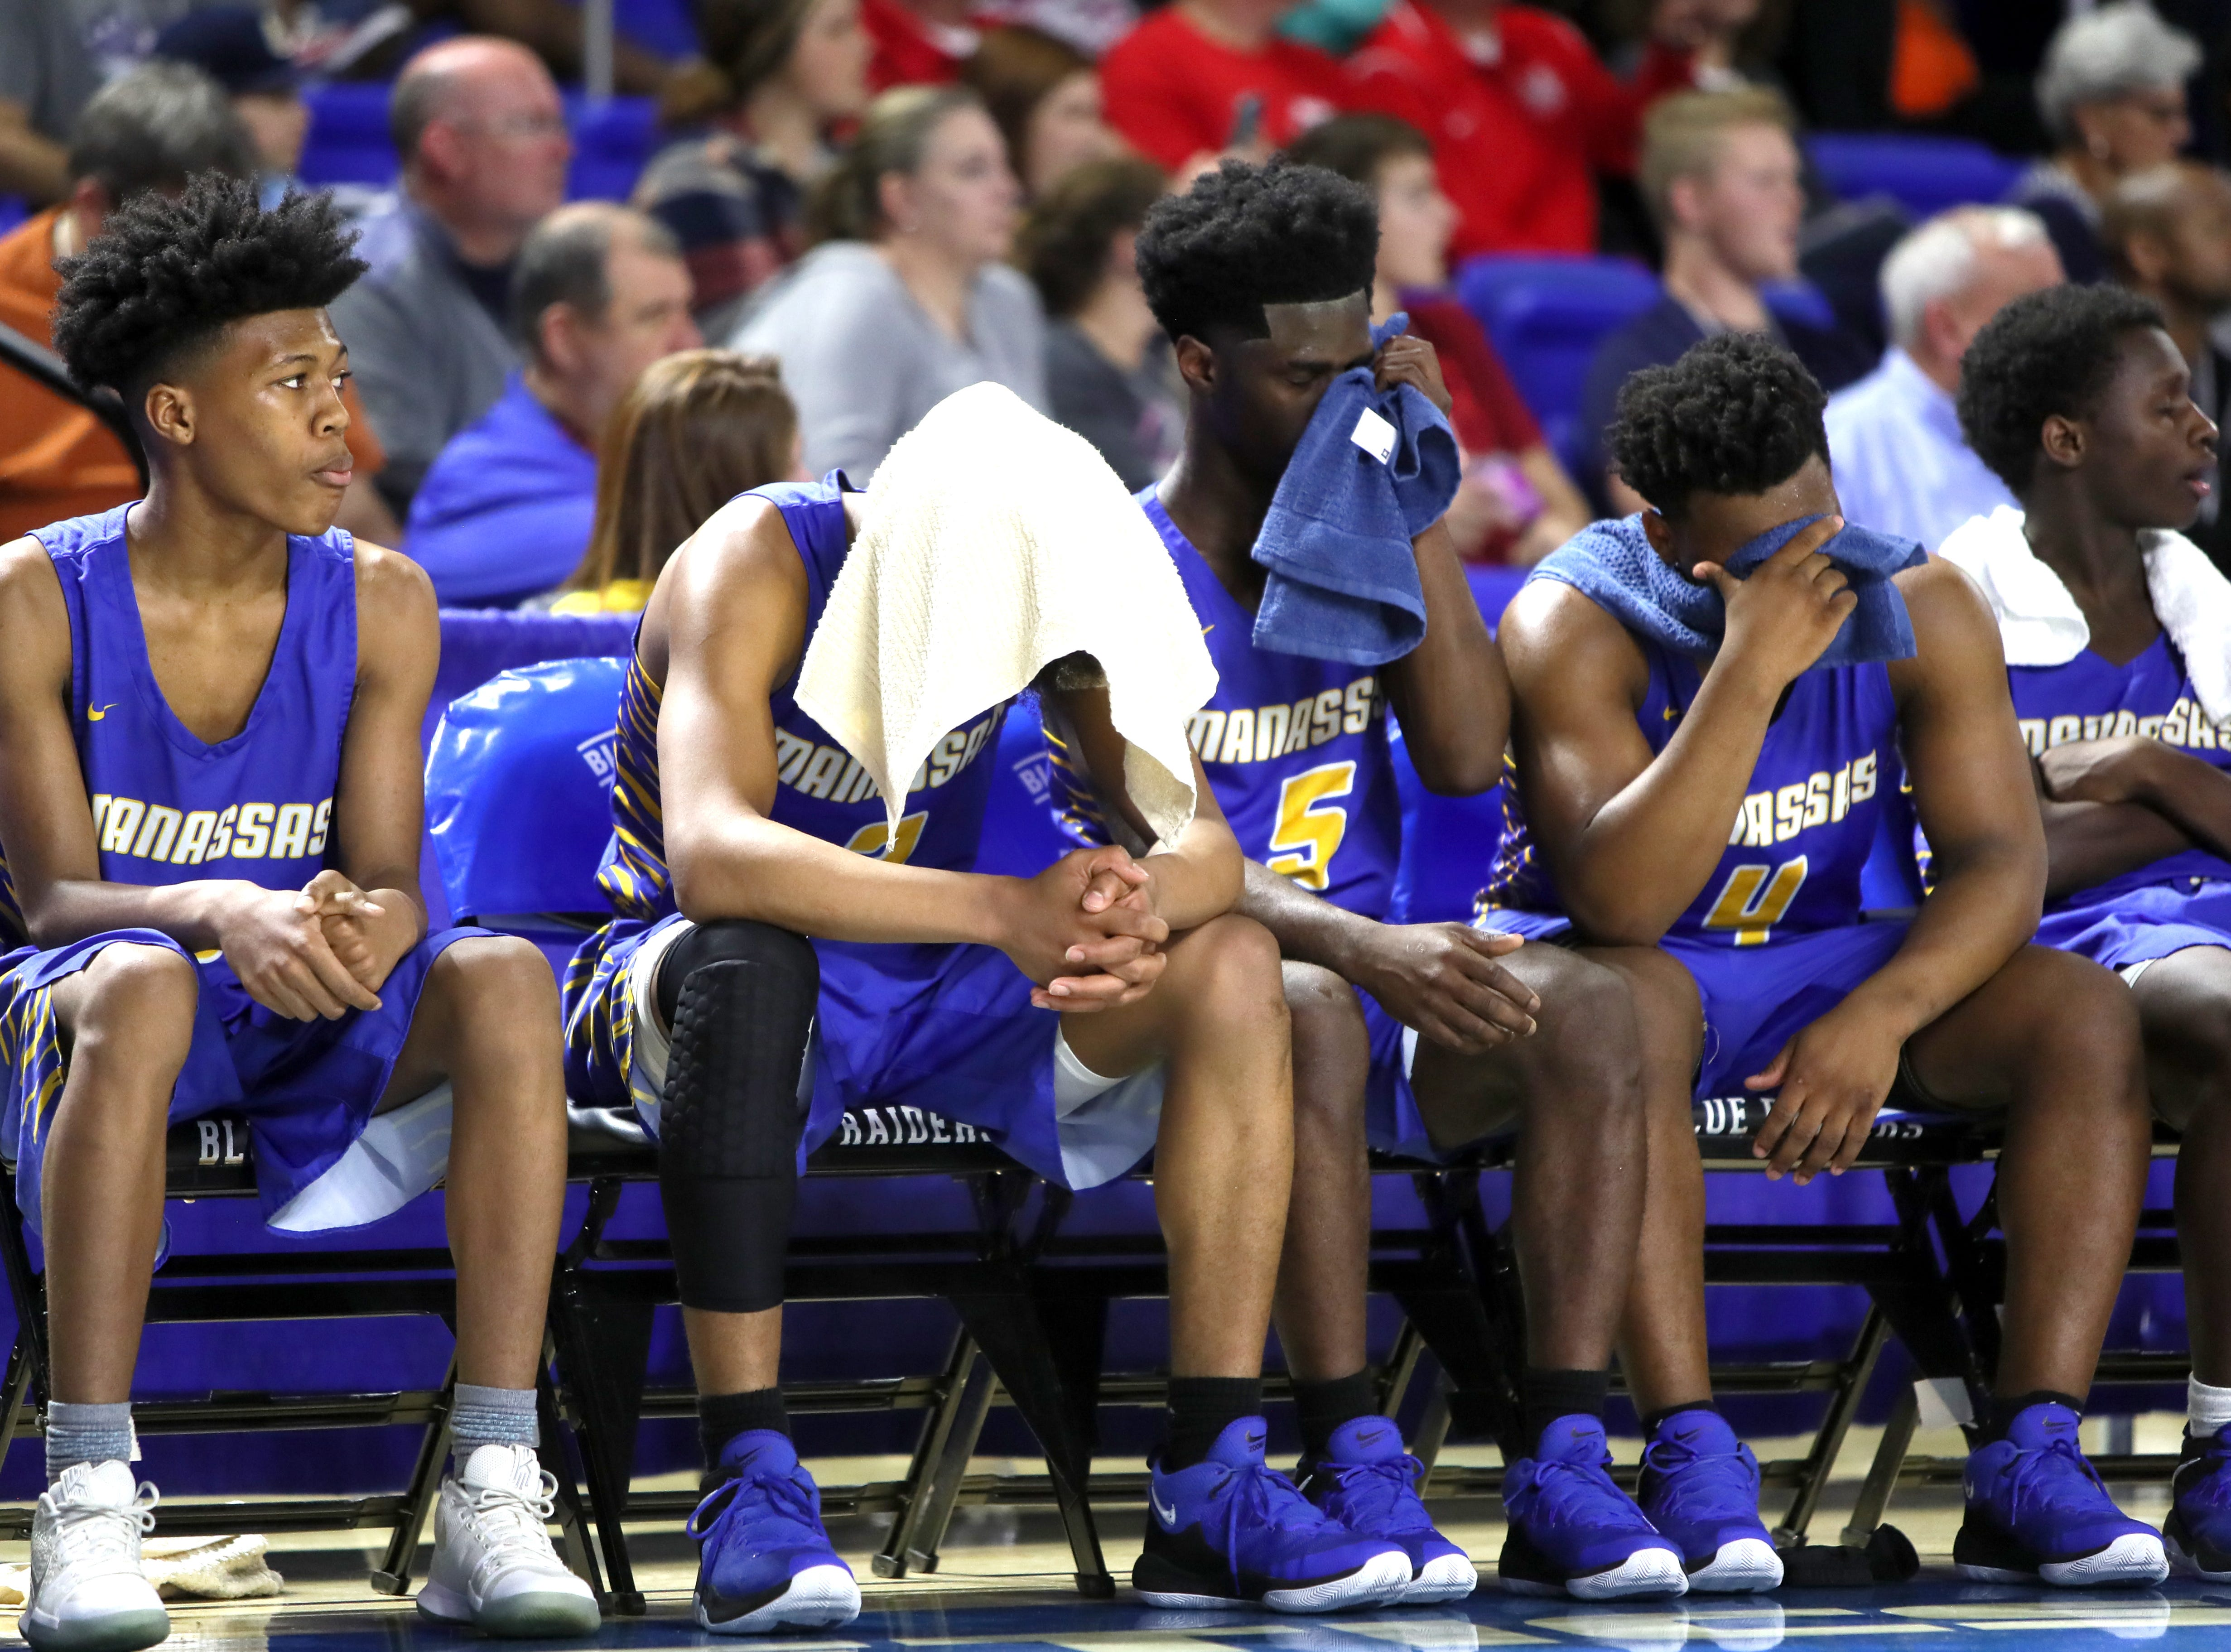 Manassas players cover their faces as the final seconds tick away on their 77-53 loss to Columbia Academy during the TSSAA Division I basketball state tournament at the Murphy Center in Murfreesboro on Thursday, March 14, 2019